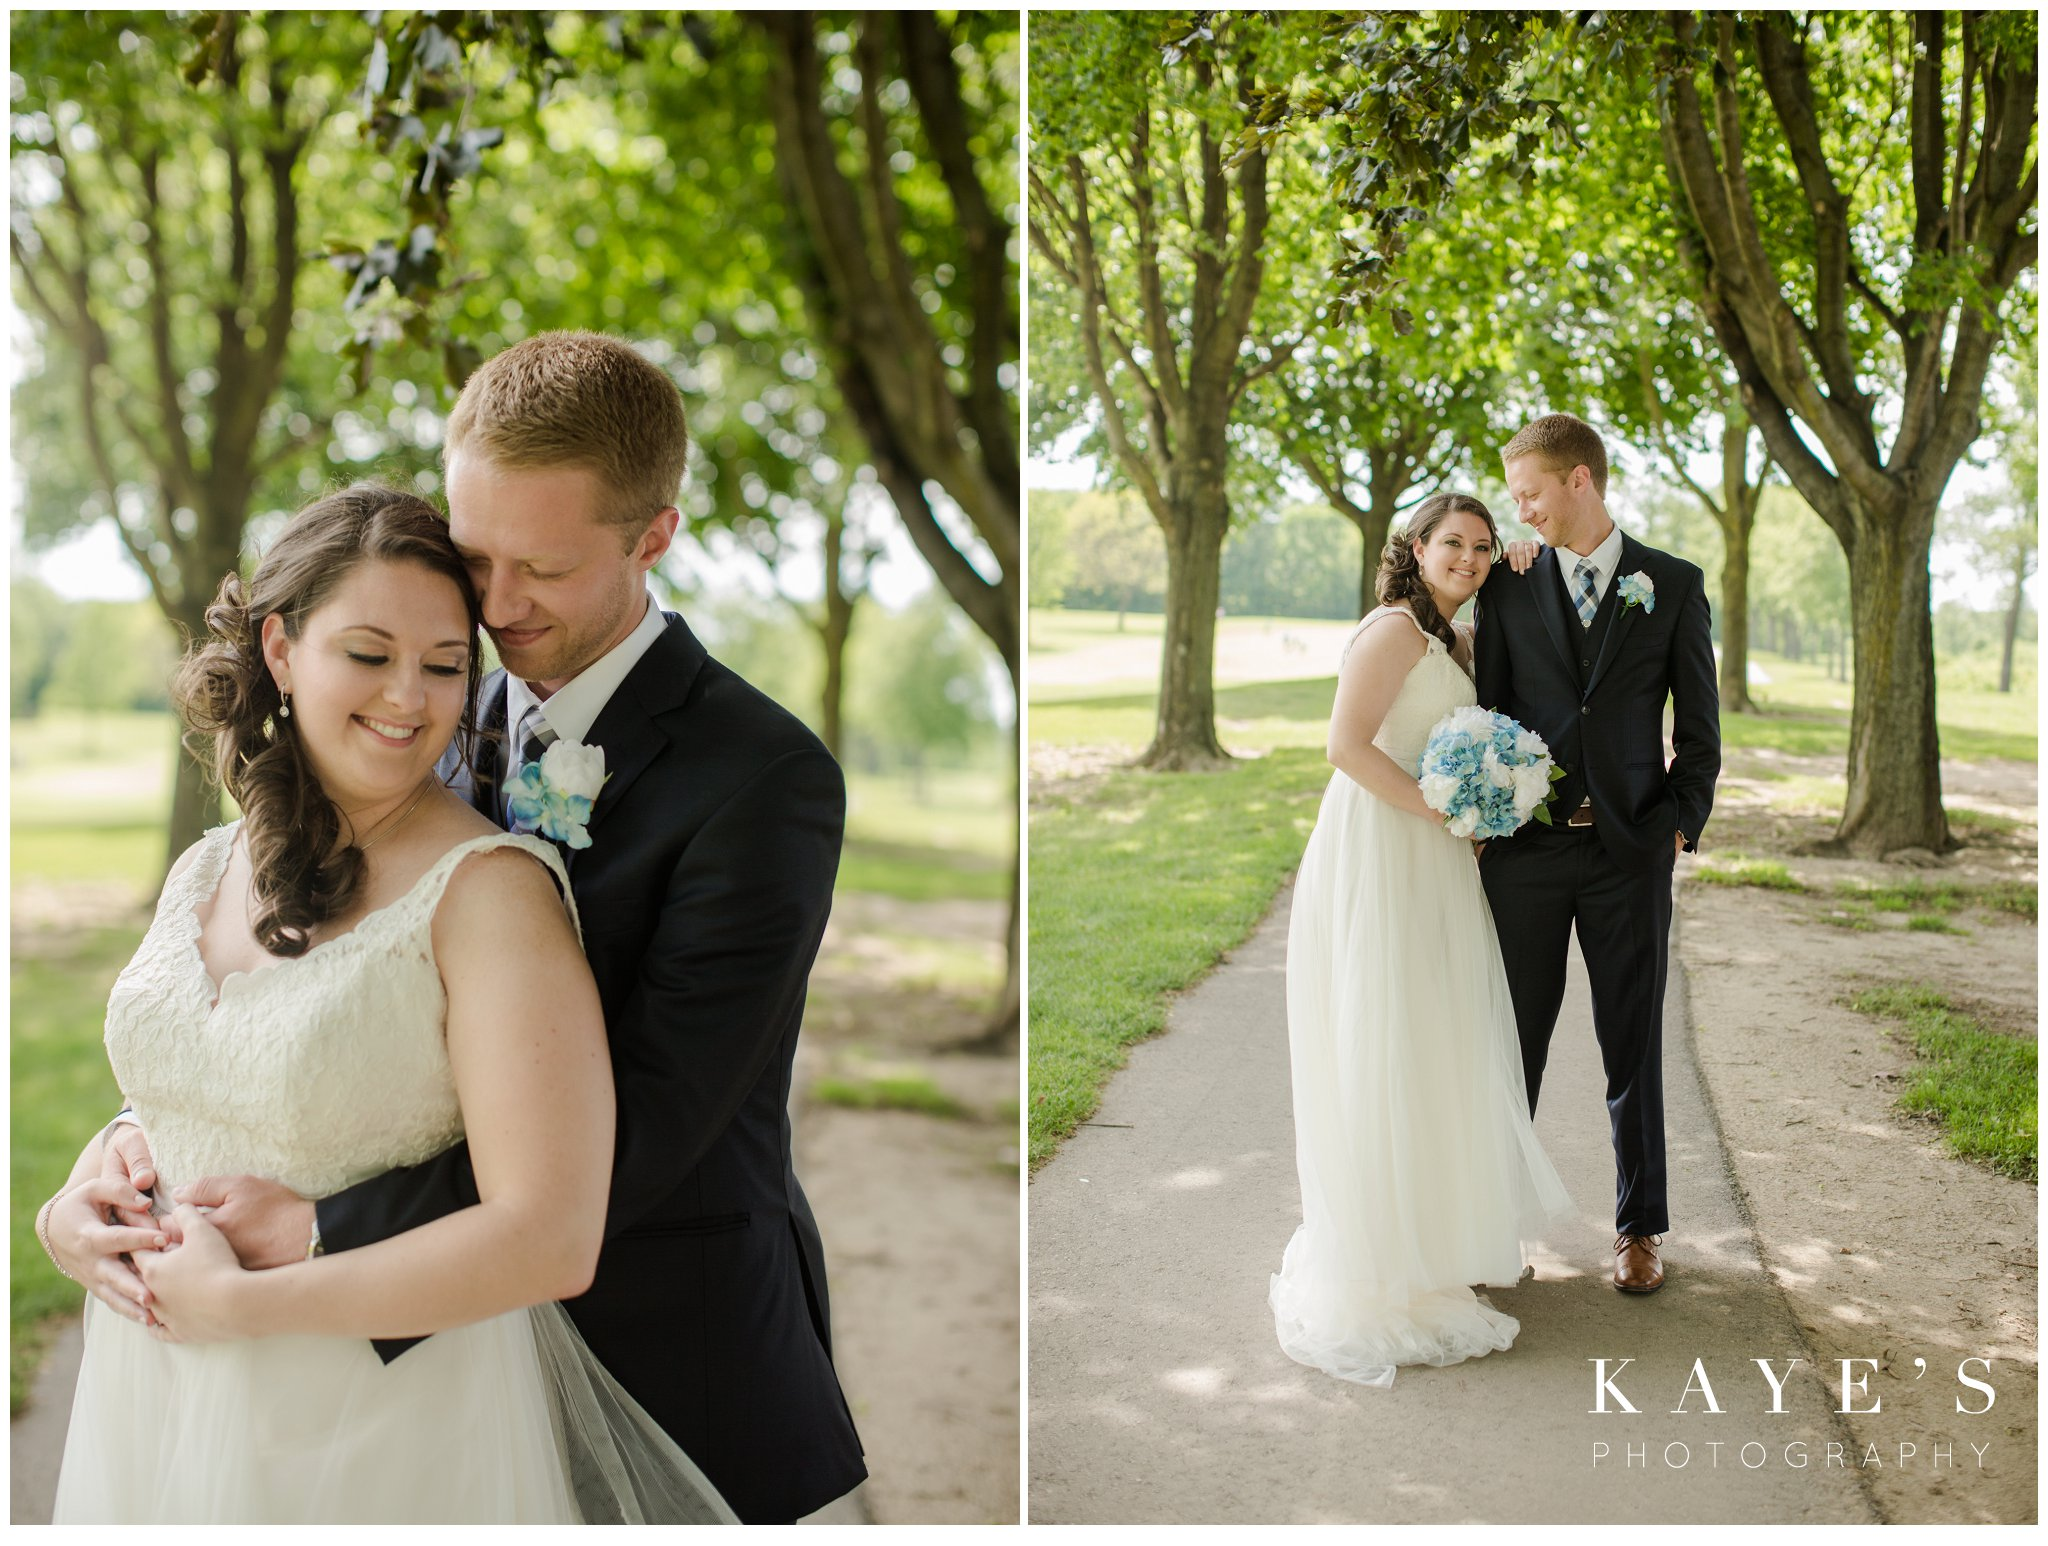 Kayes Photography- howell-michigan-wedding-photographer_0742.jpg